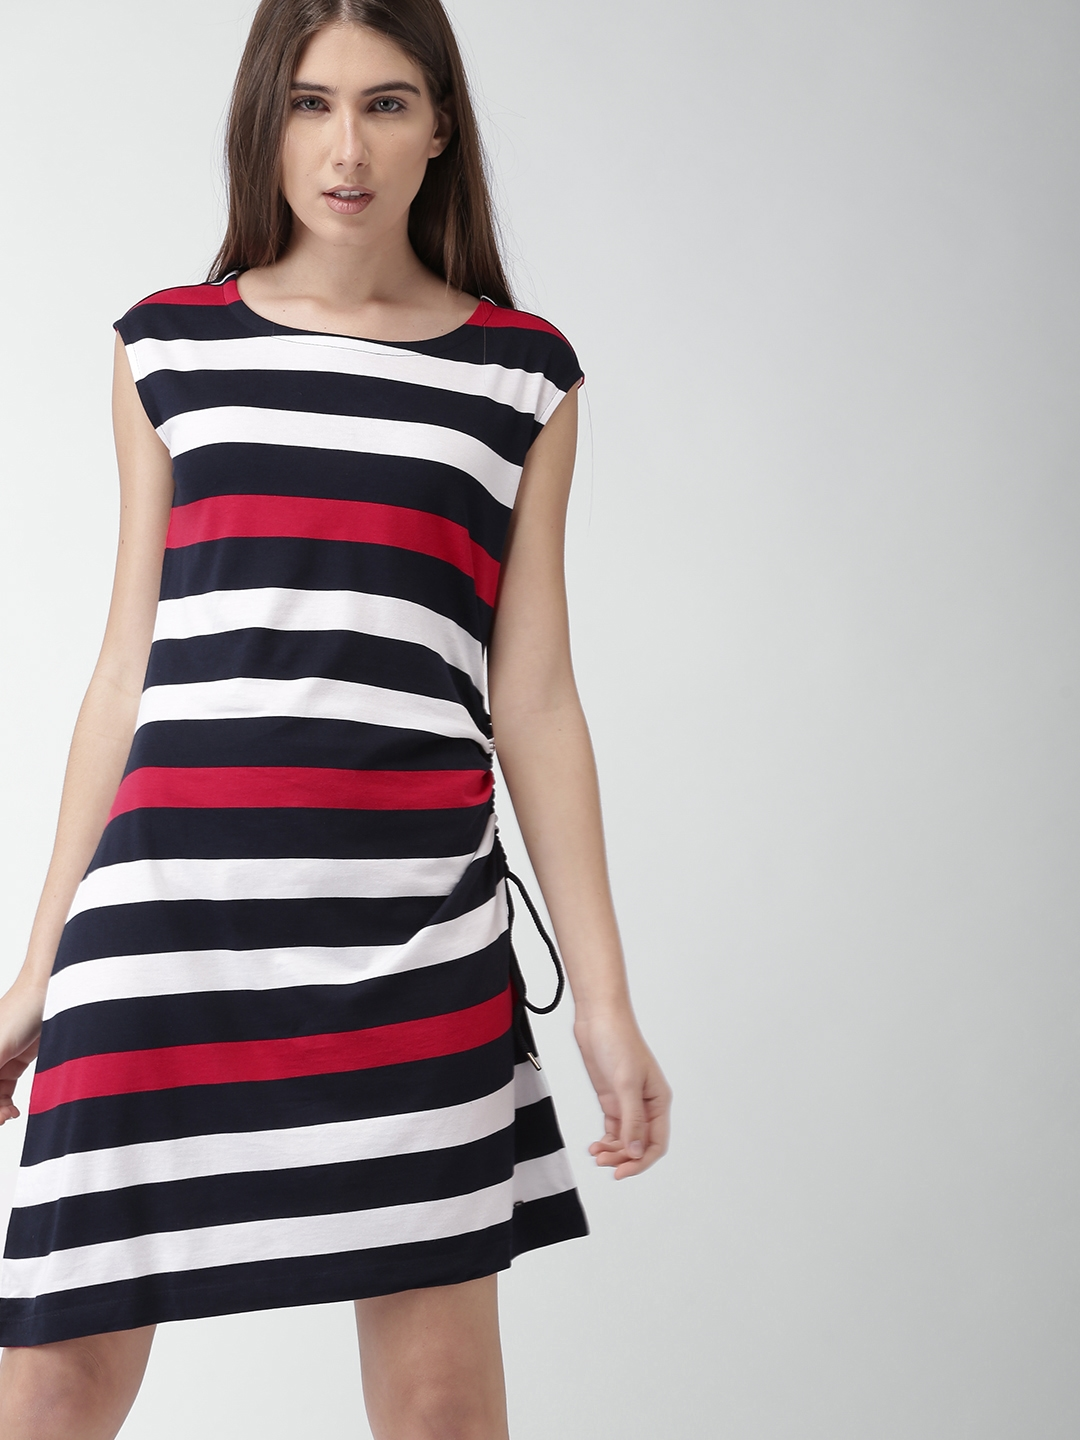 b2b0be3d Buy Tommy Hilfiger Women Navy Blue & White Striped A Line Dress ...